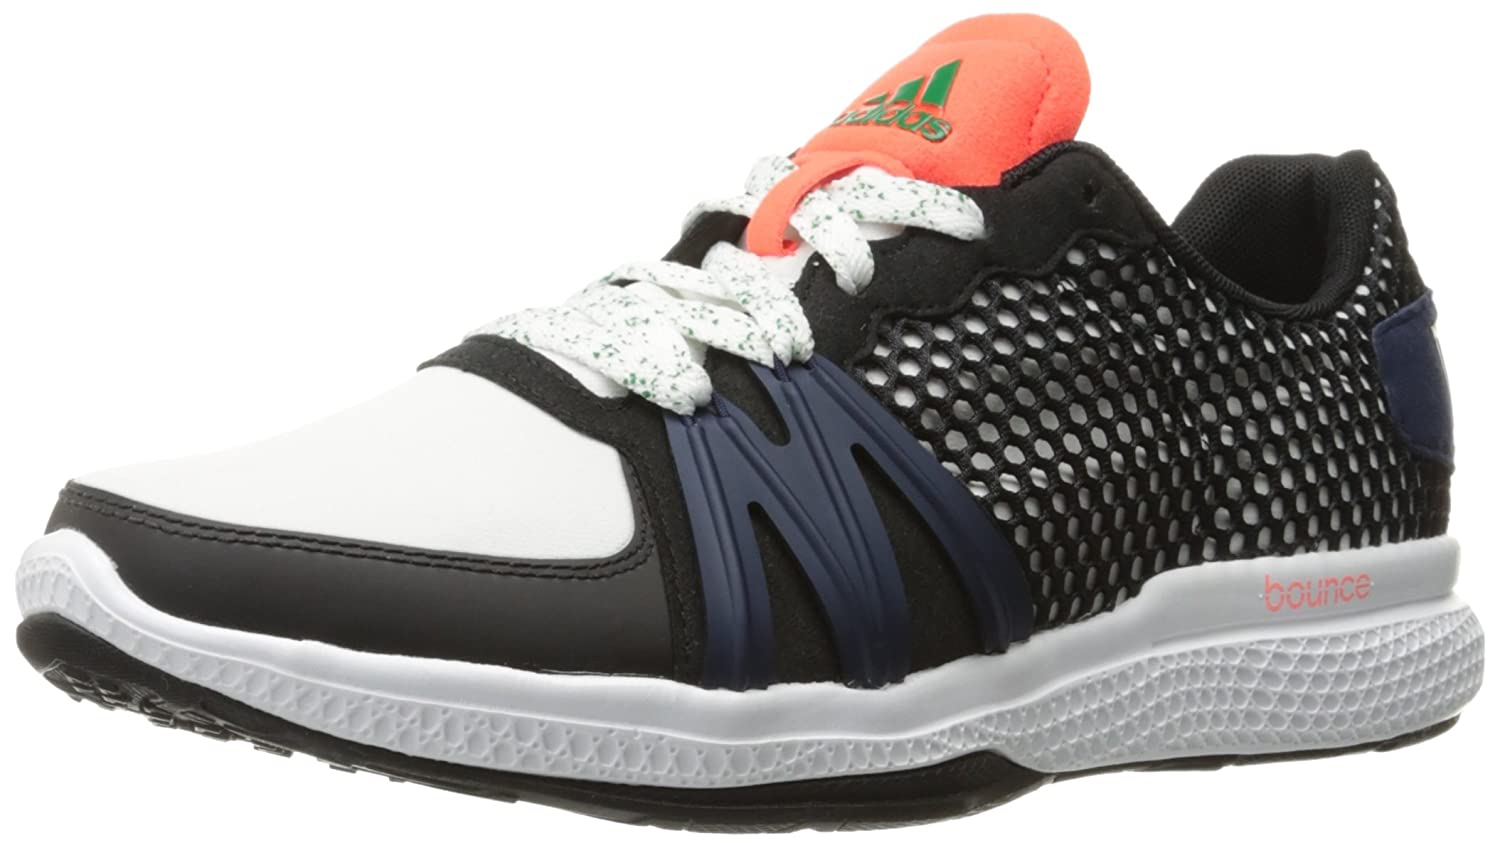 adidas Performance Women's Ively Cross-Trainer Shoe B01DTHP8PW 9.5 B(M) US|White/Black/Solar Red